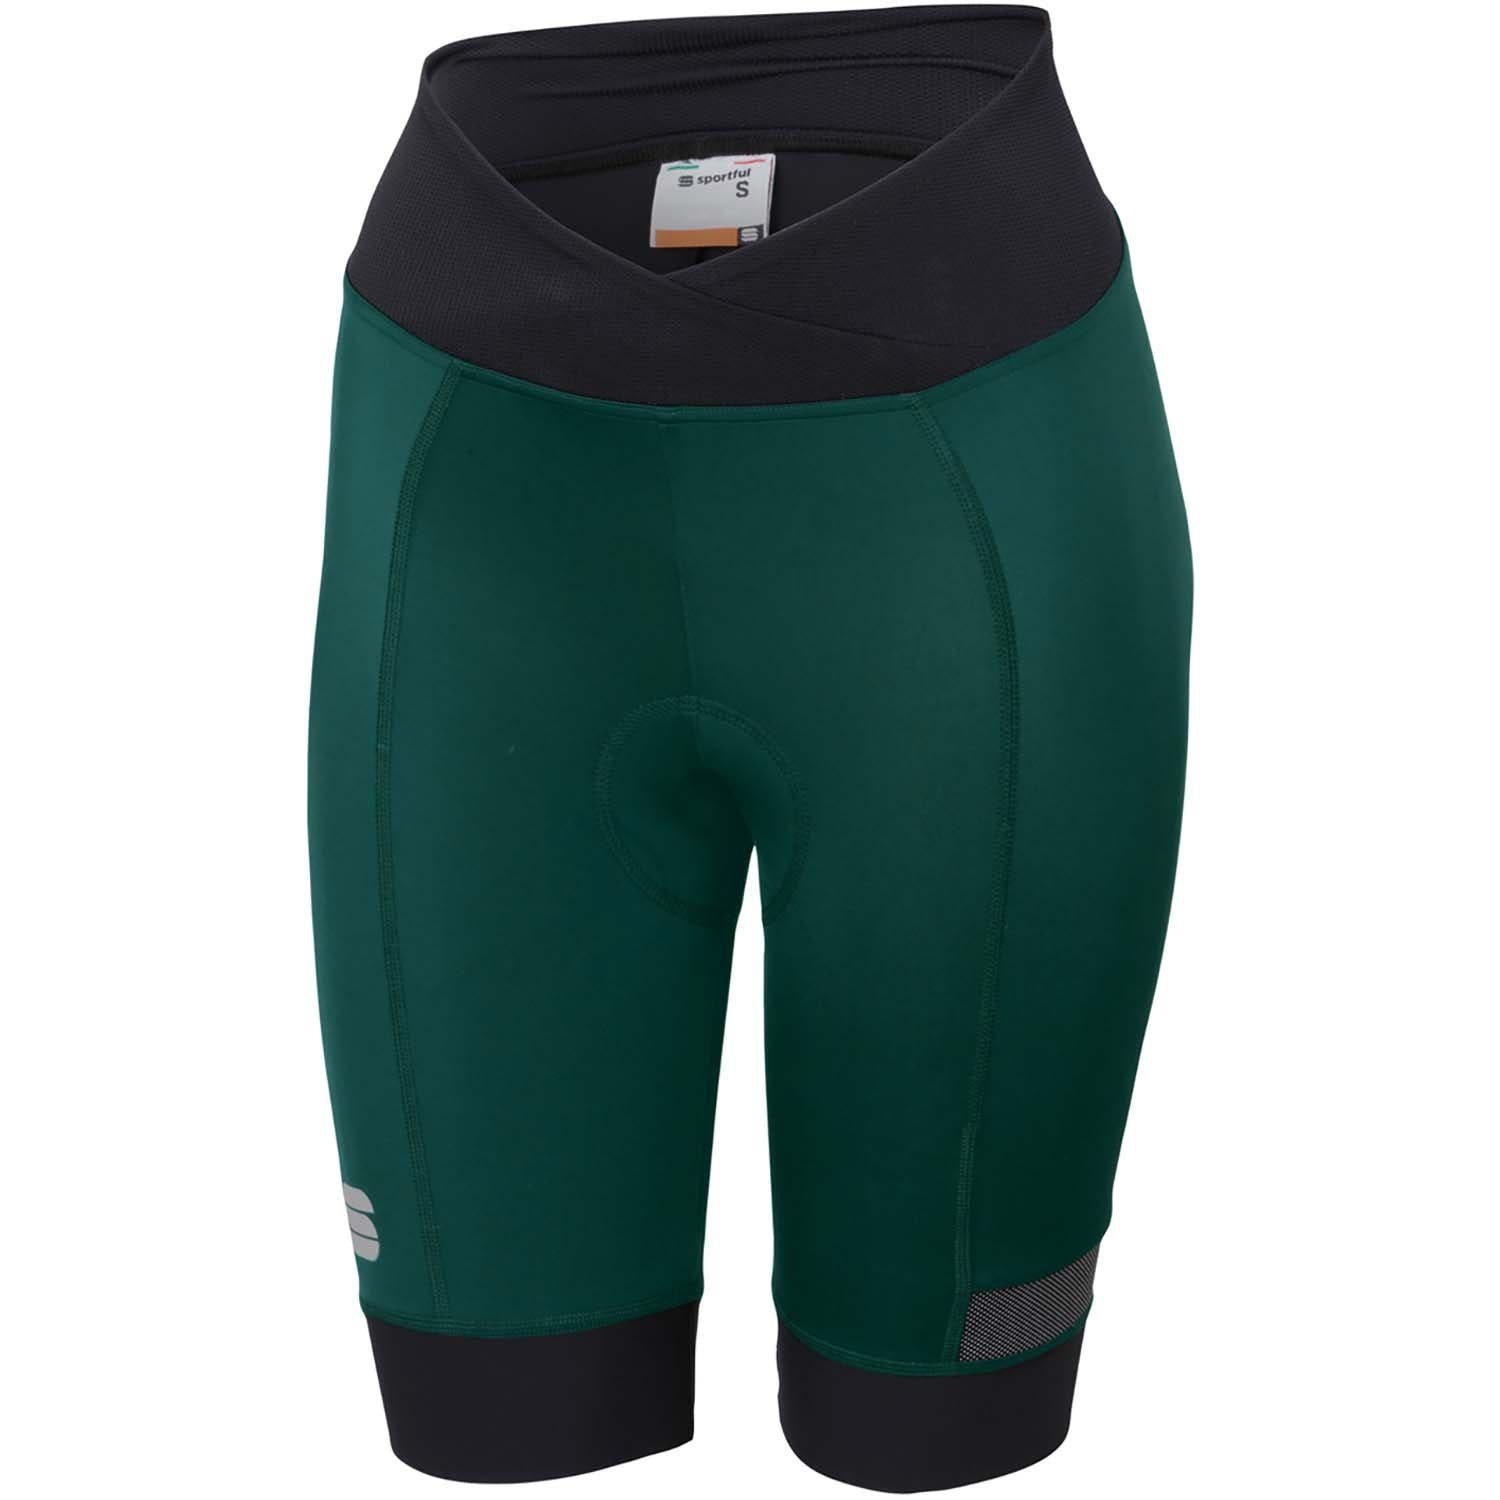 Sportful-Sportful Giara Women's Shorts-Sea Moss-XS-SF020243291-saddleback-elite-performance-cycling